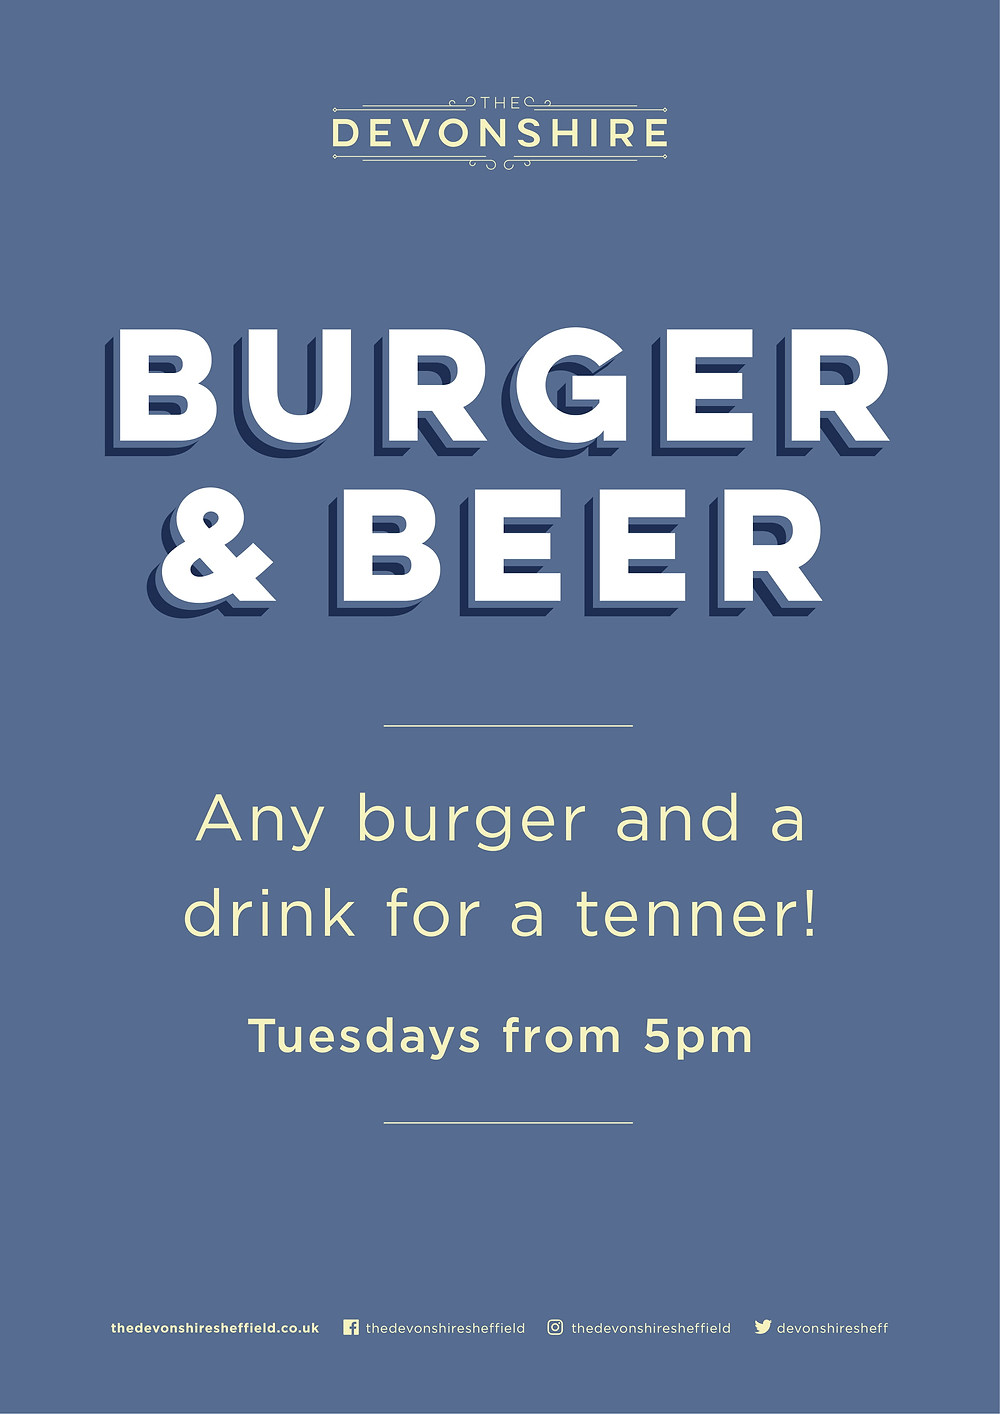 Devonshire Tuesdays Burger and drink offer for a tenner